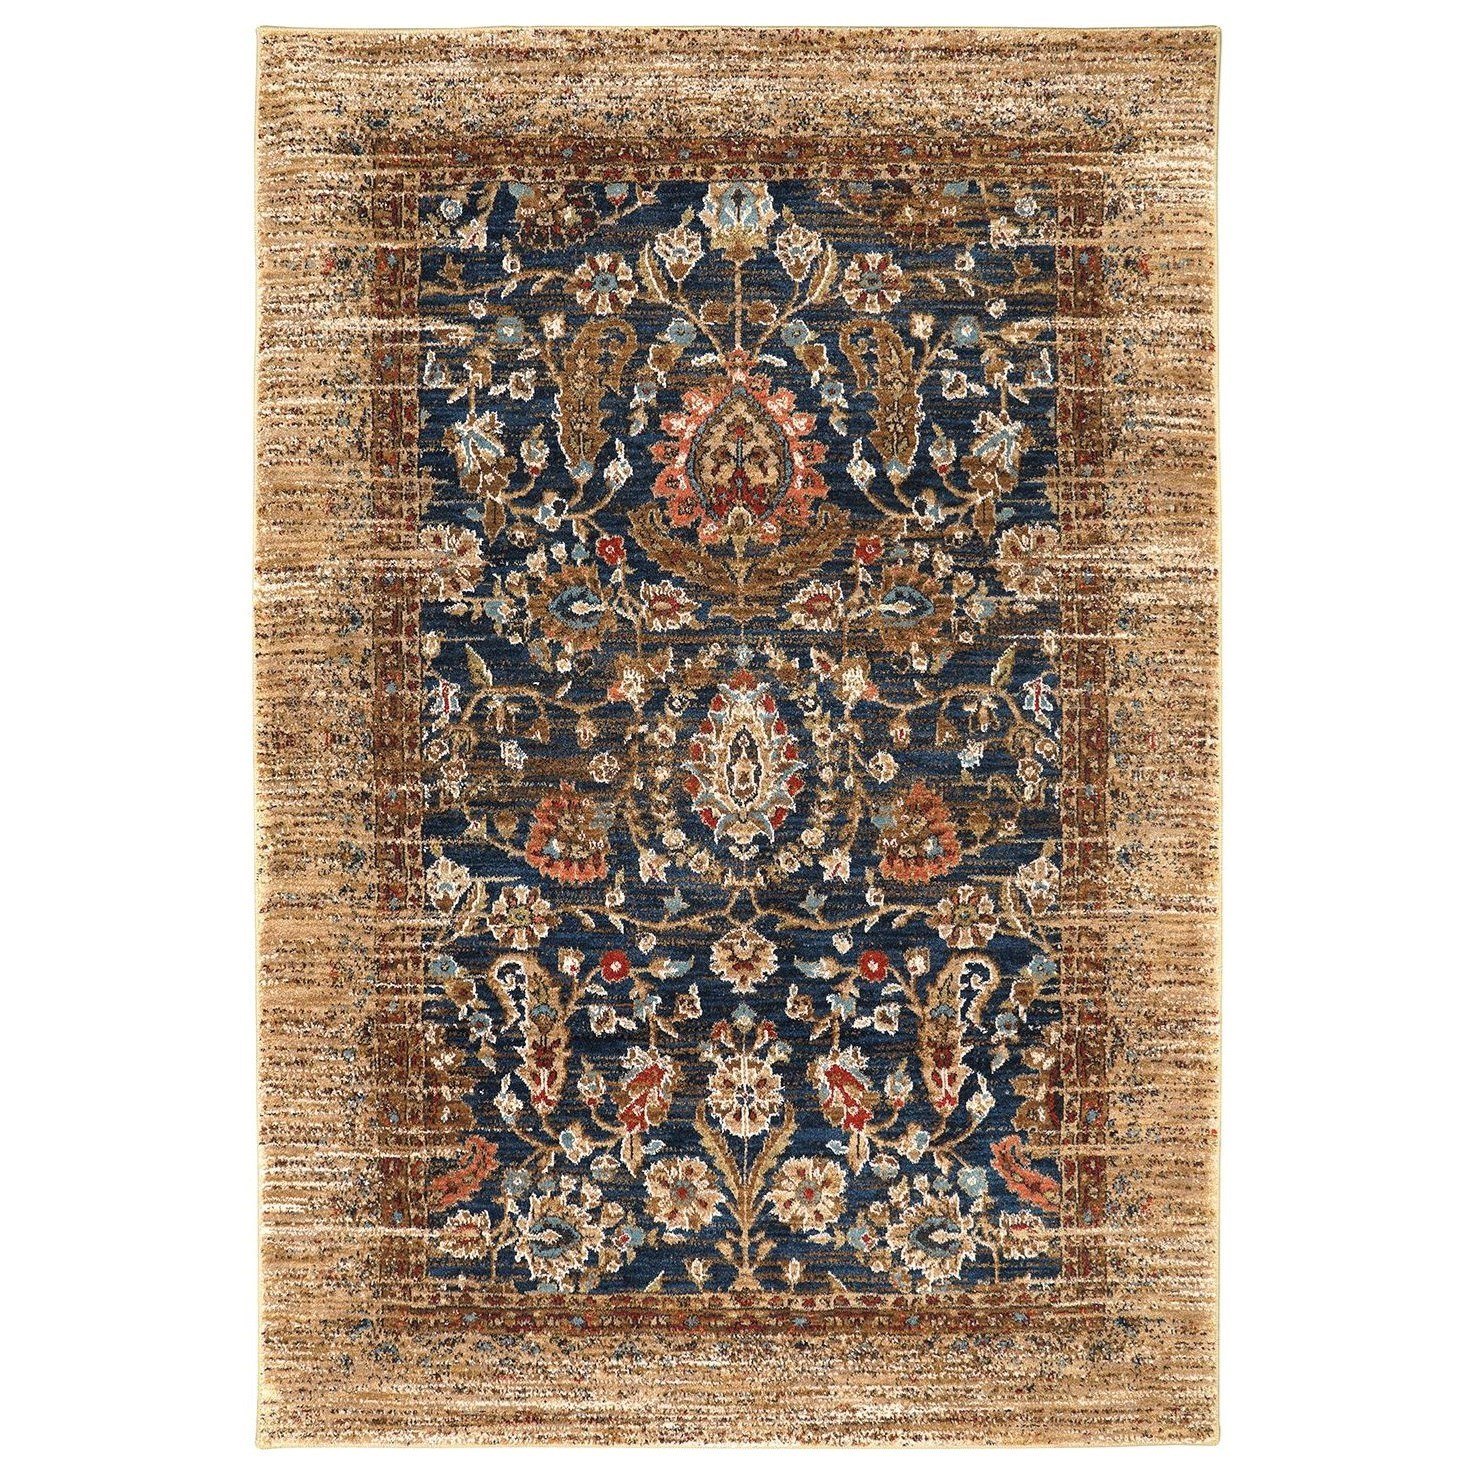 Spice Market 8'x11' Charax Gold Rug by Karastan Rugs at Darvin Furniture